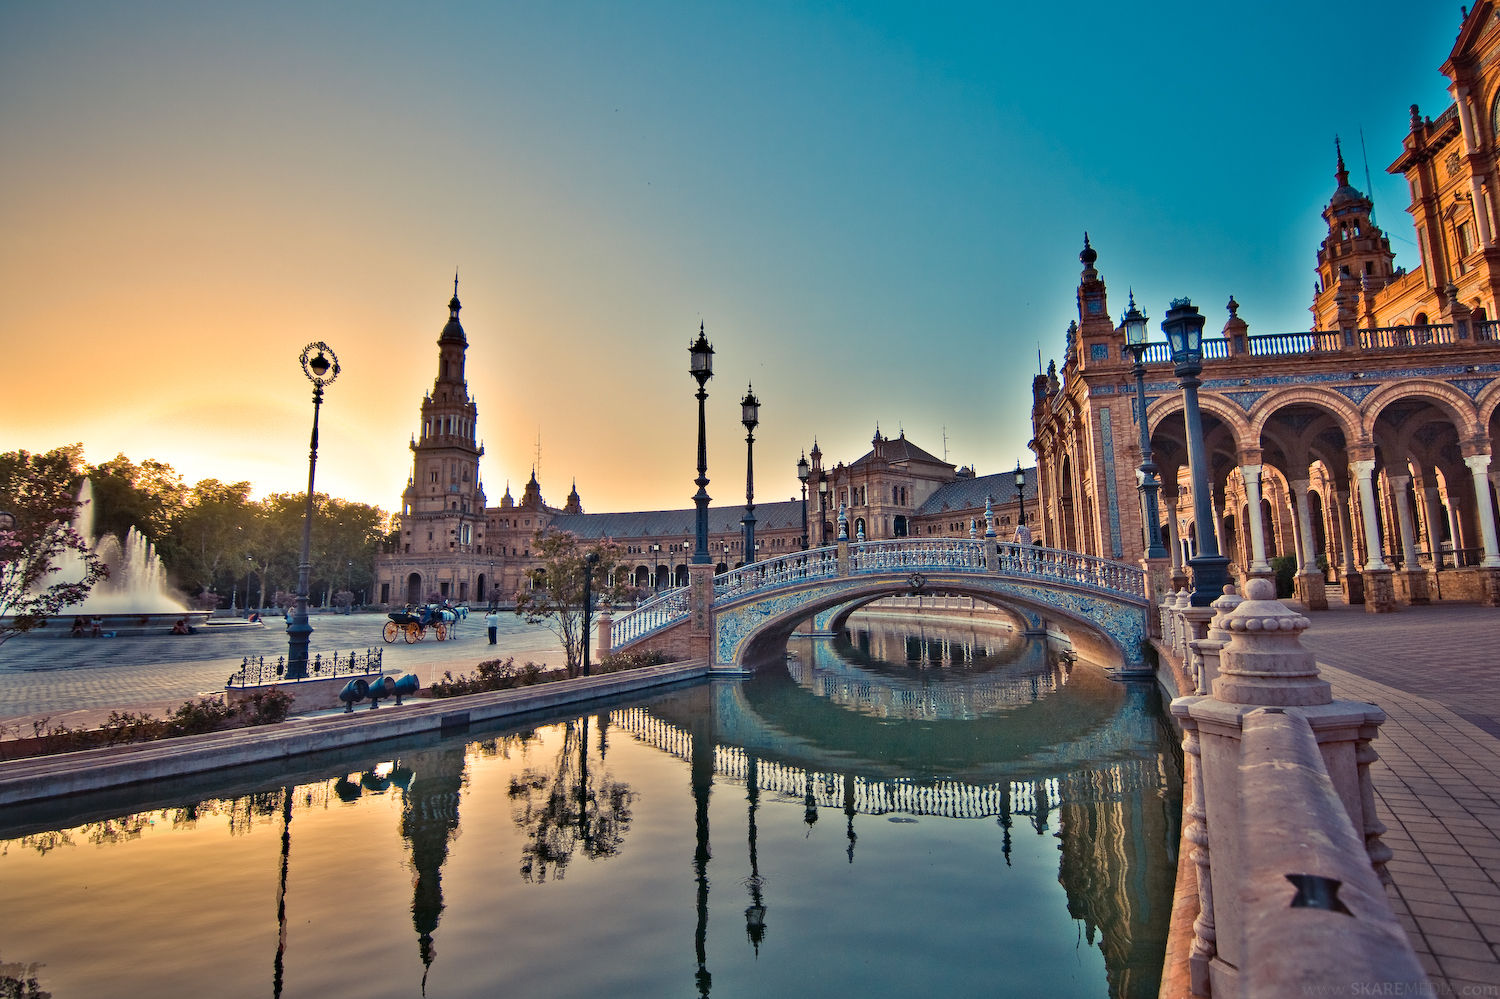 The Plaza de España located in the Parque de María Luisa in Seville, Spain. It is a landmark example of the Renaissance Revival style in Spanish architecture built in 1928 for the Ibero-American Exposition of 1929. (Photo: ThousandWonders.net)